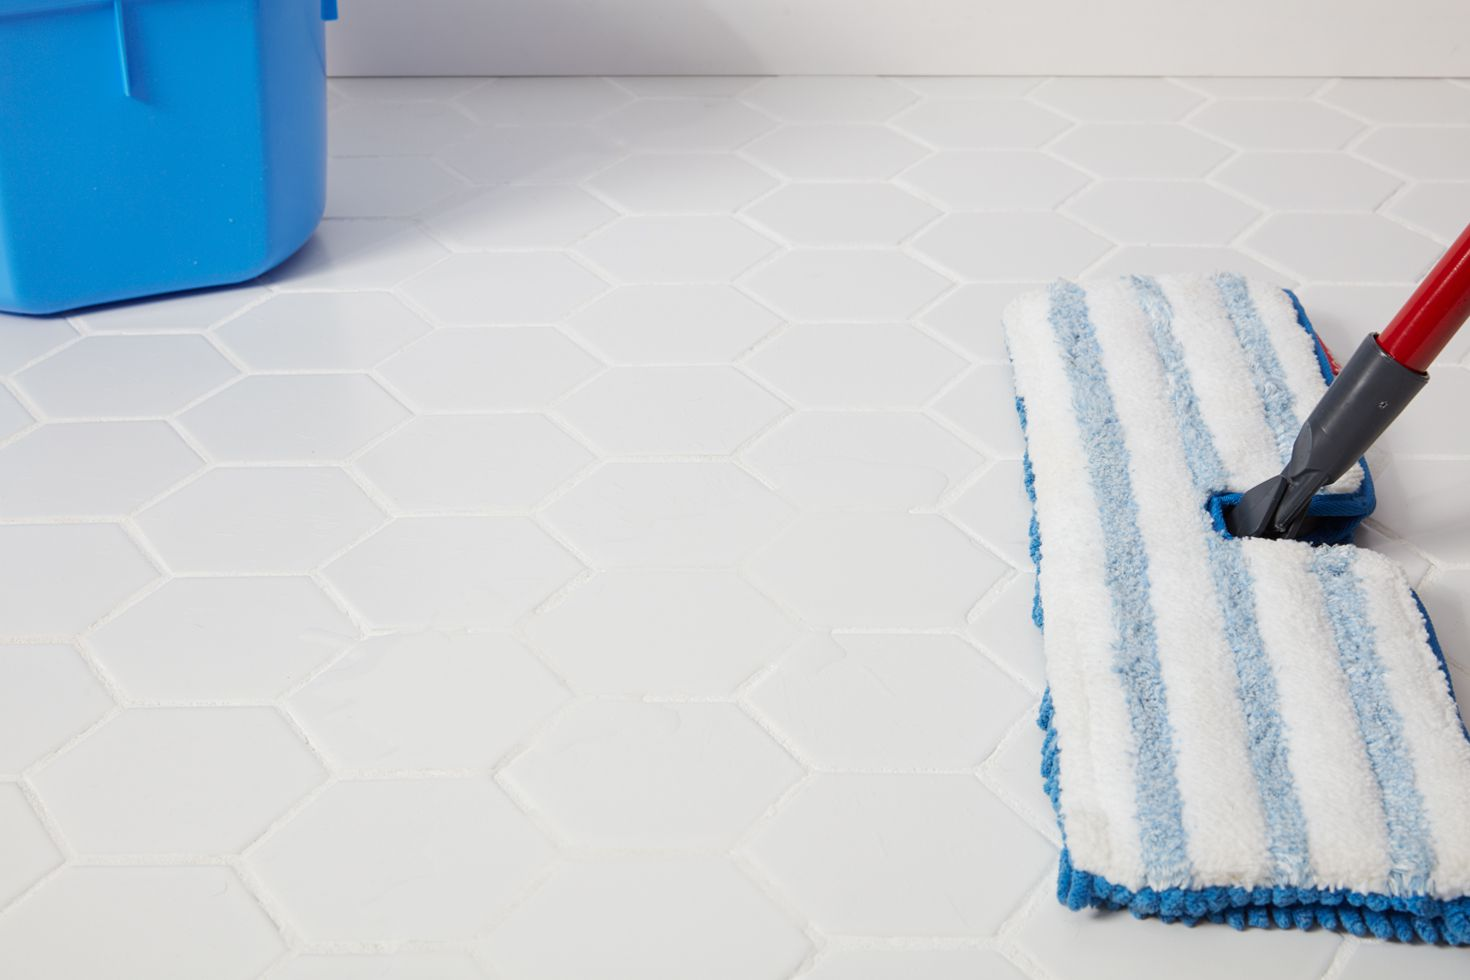 Cleaning tile floor with microfiber mop